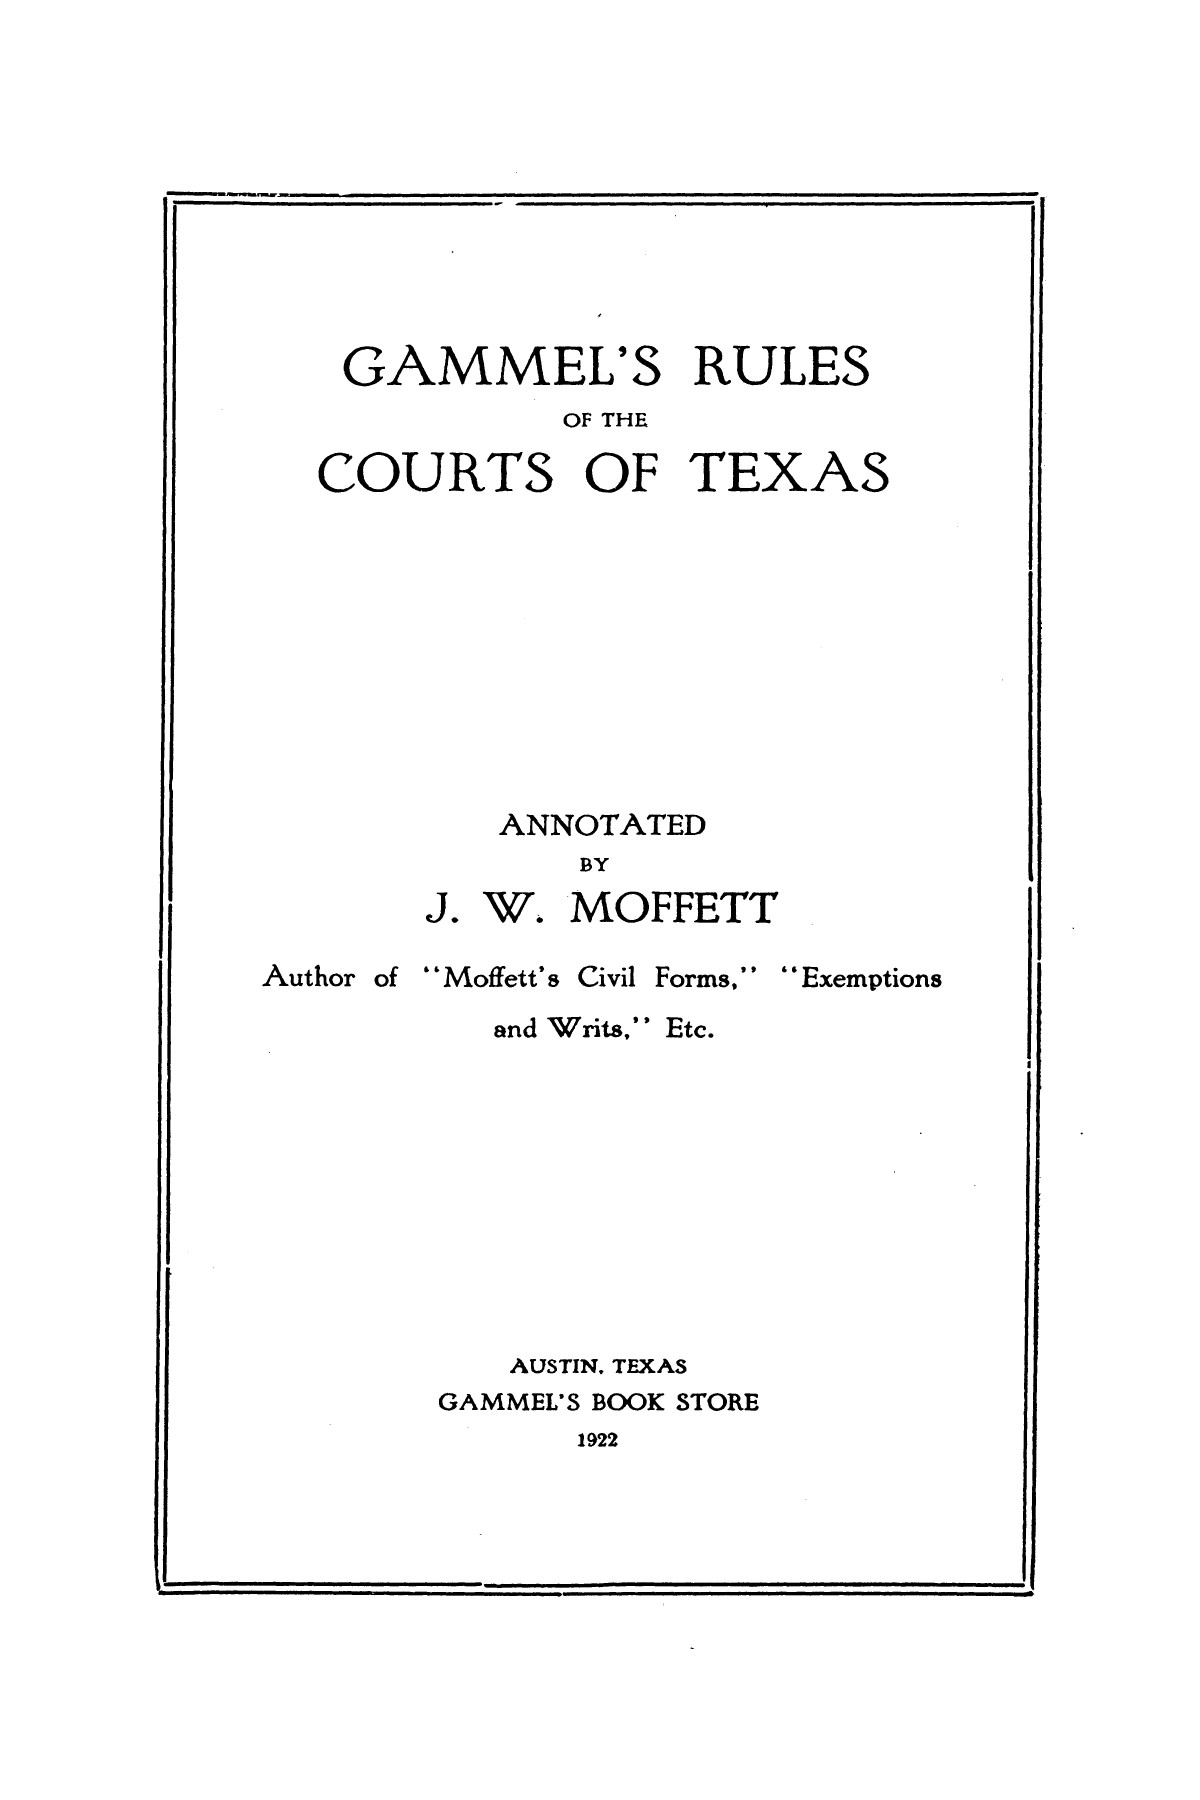 Gammel's Rules of the Courts of Texas                                                                                                      [Sequence #]: 1 of 70